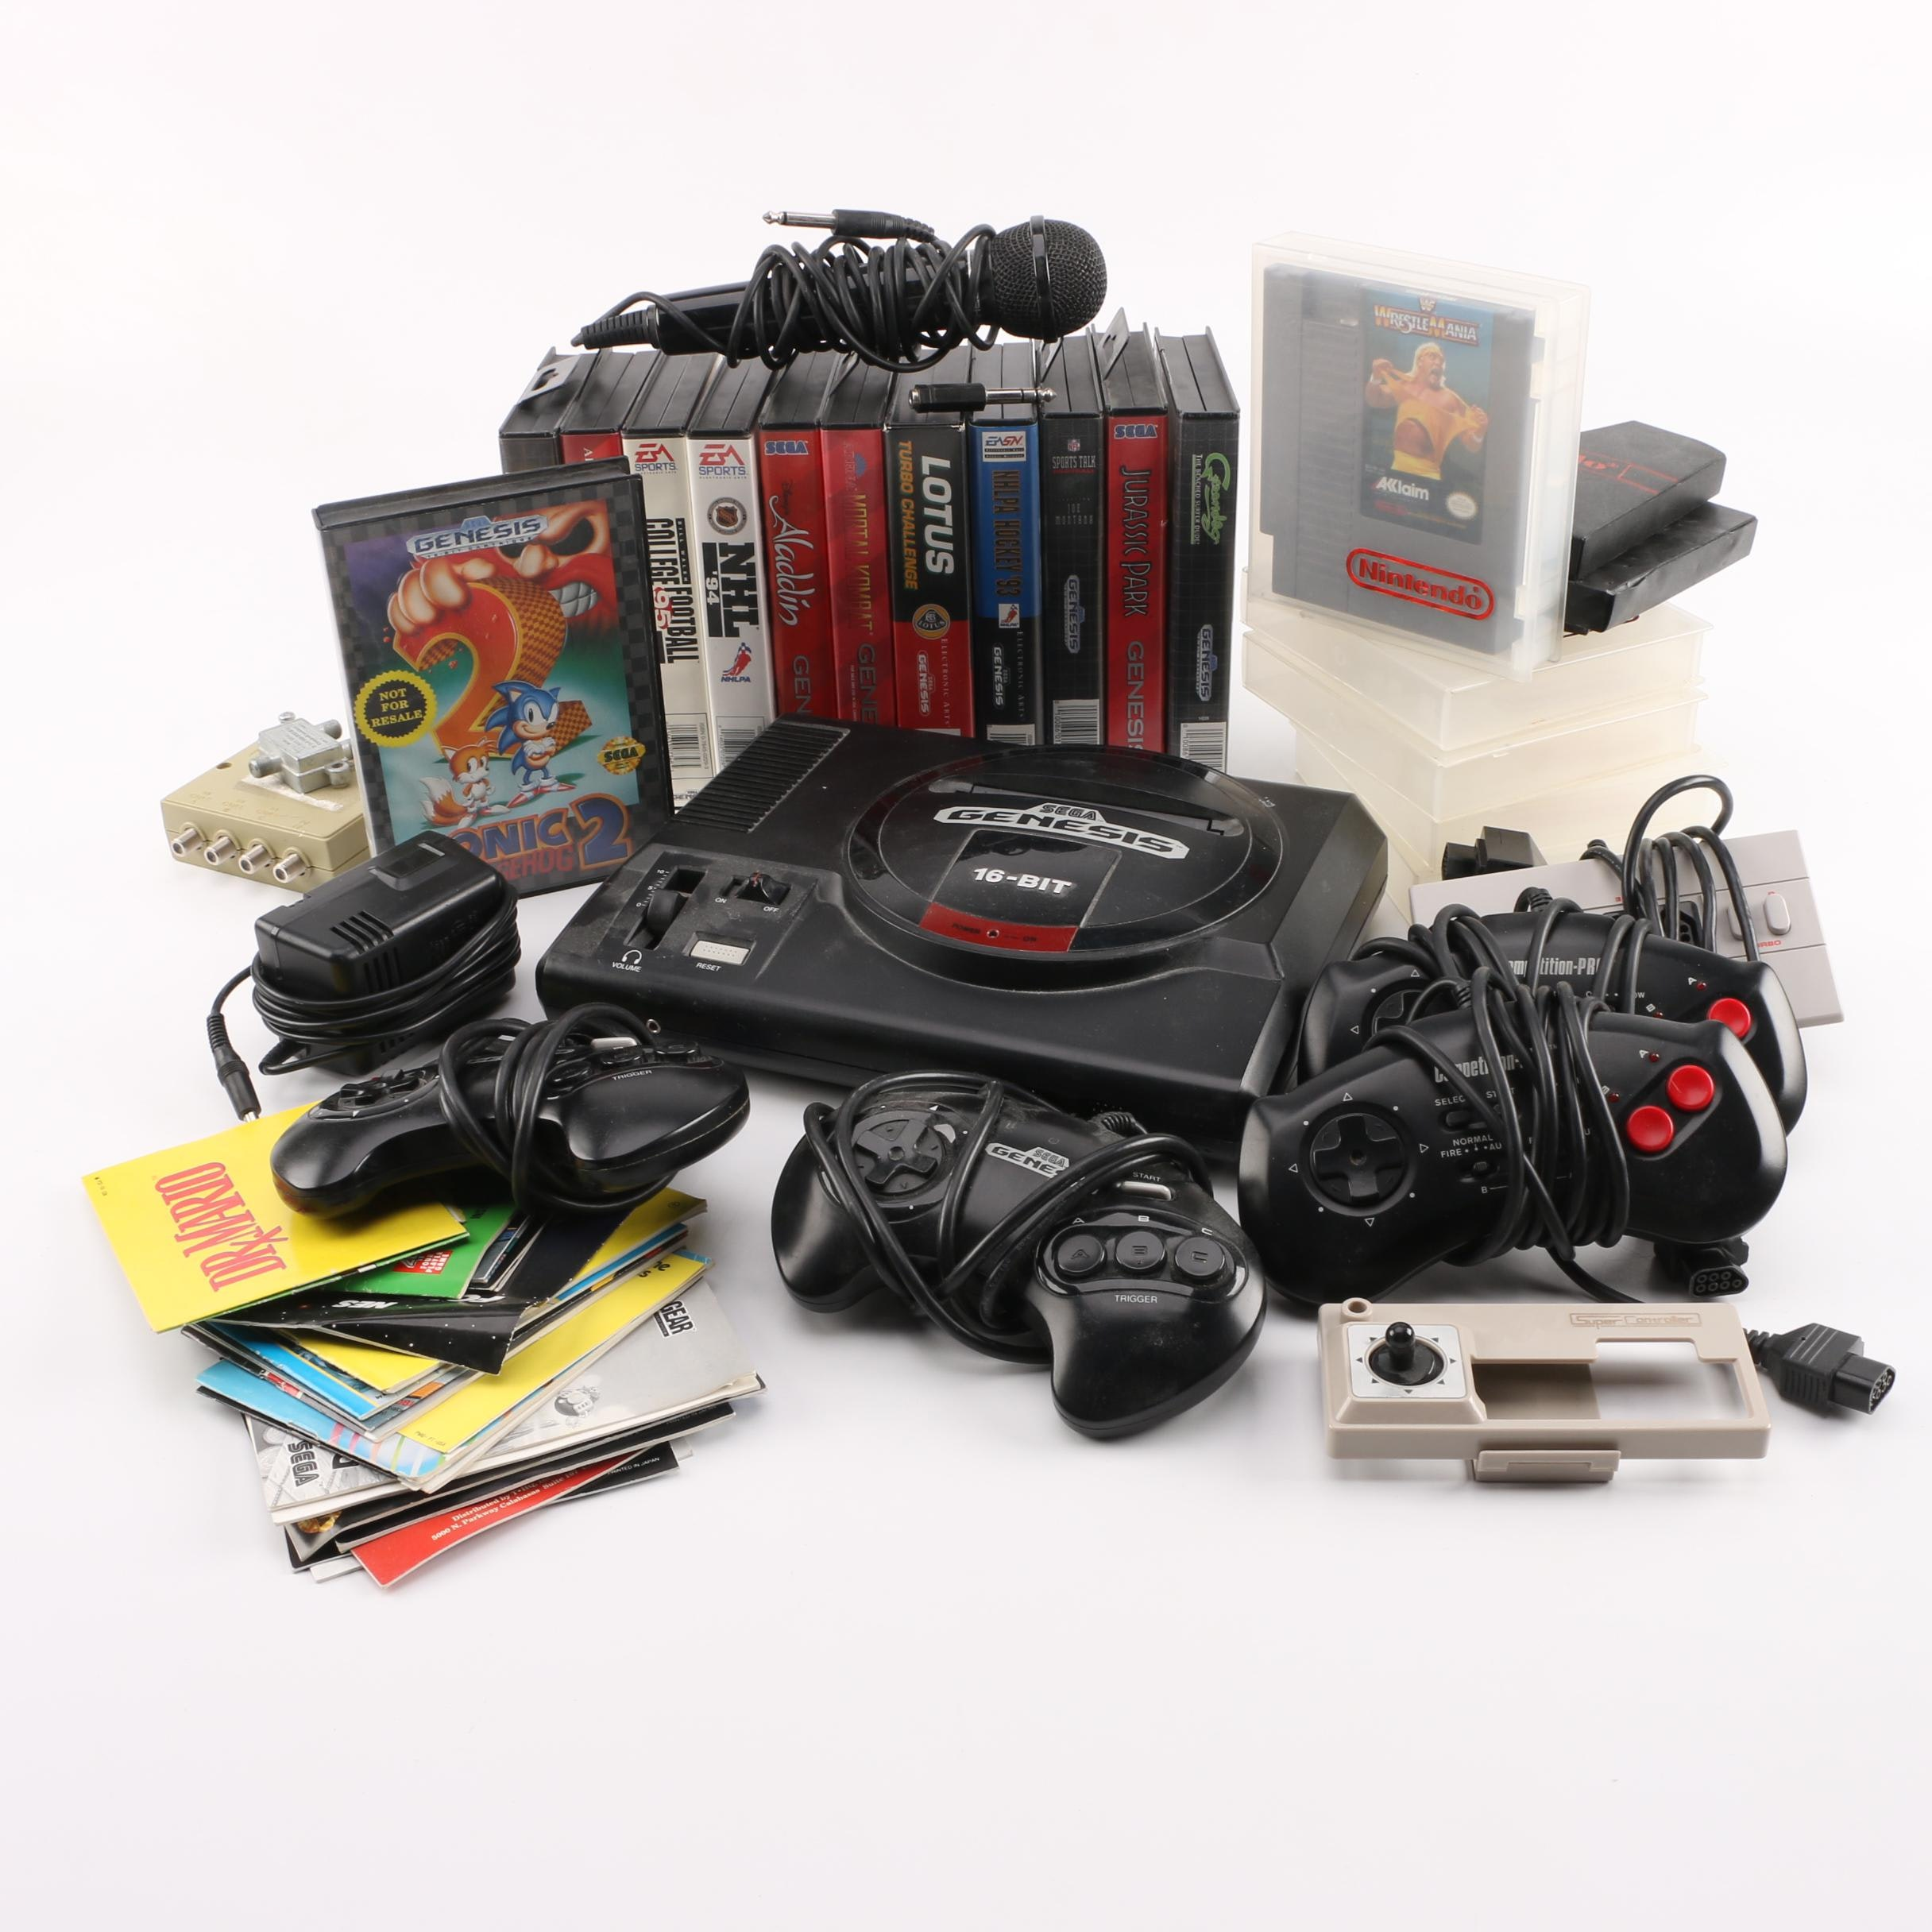 Sega Genesis Console with Genesis and SNES Related Games and Accessories